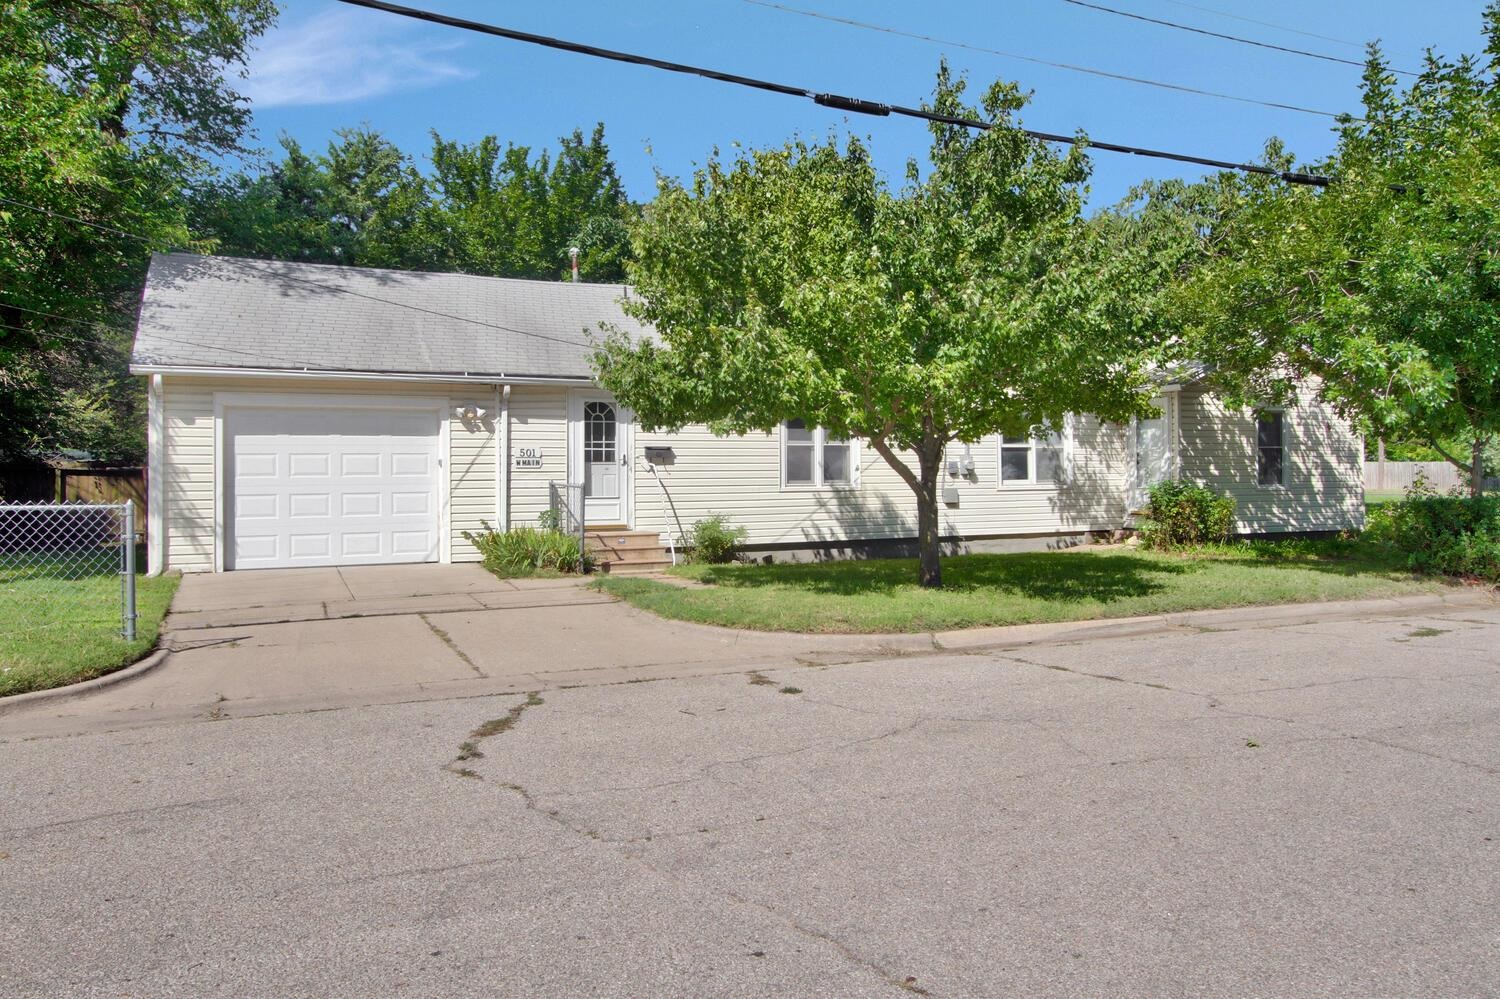 Nice 2 bedroom 2 bath ranch with a 1 car garage nestled on a corner lot with many mature trees. Feat